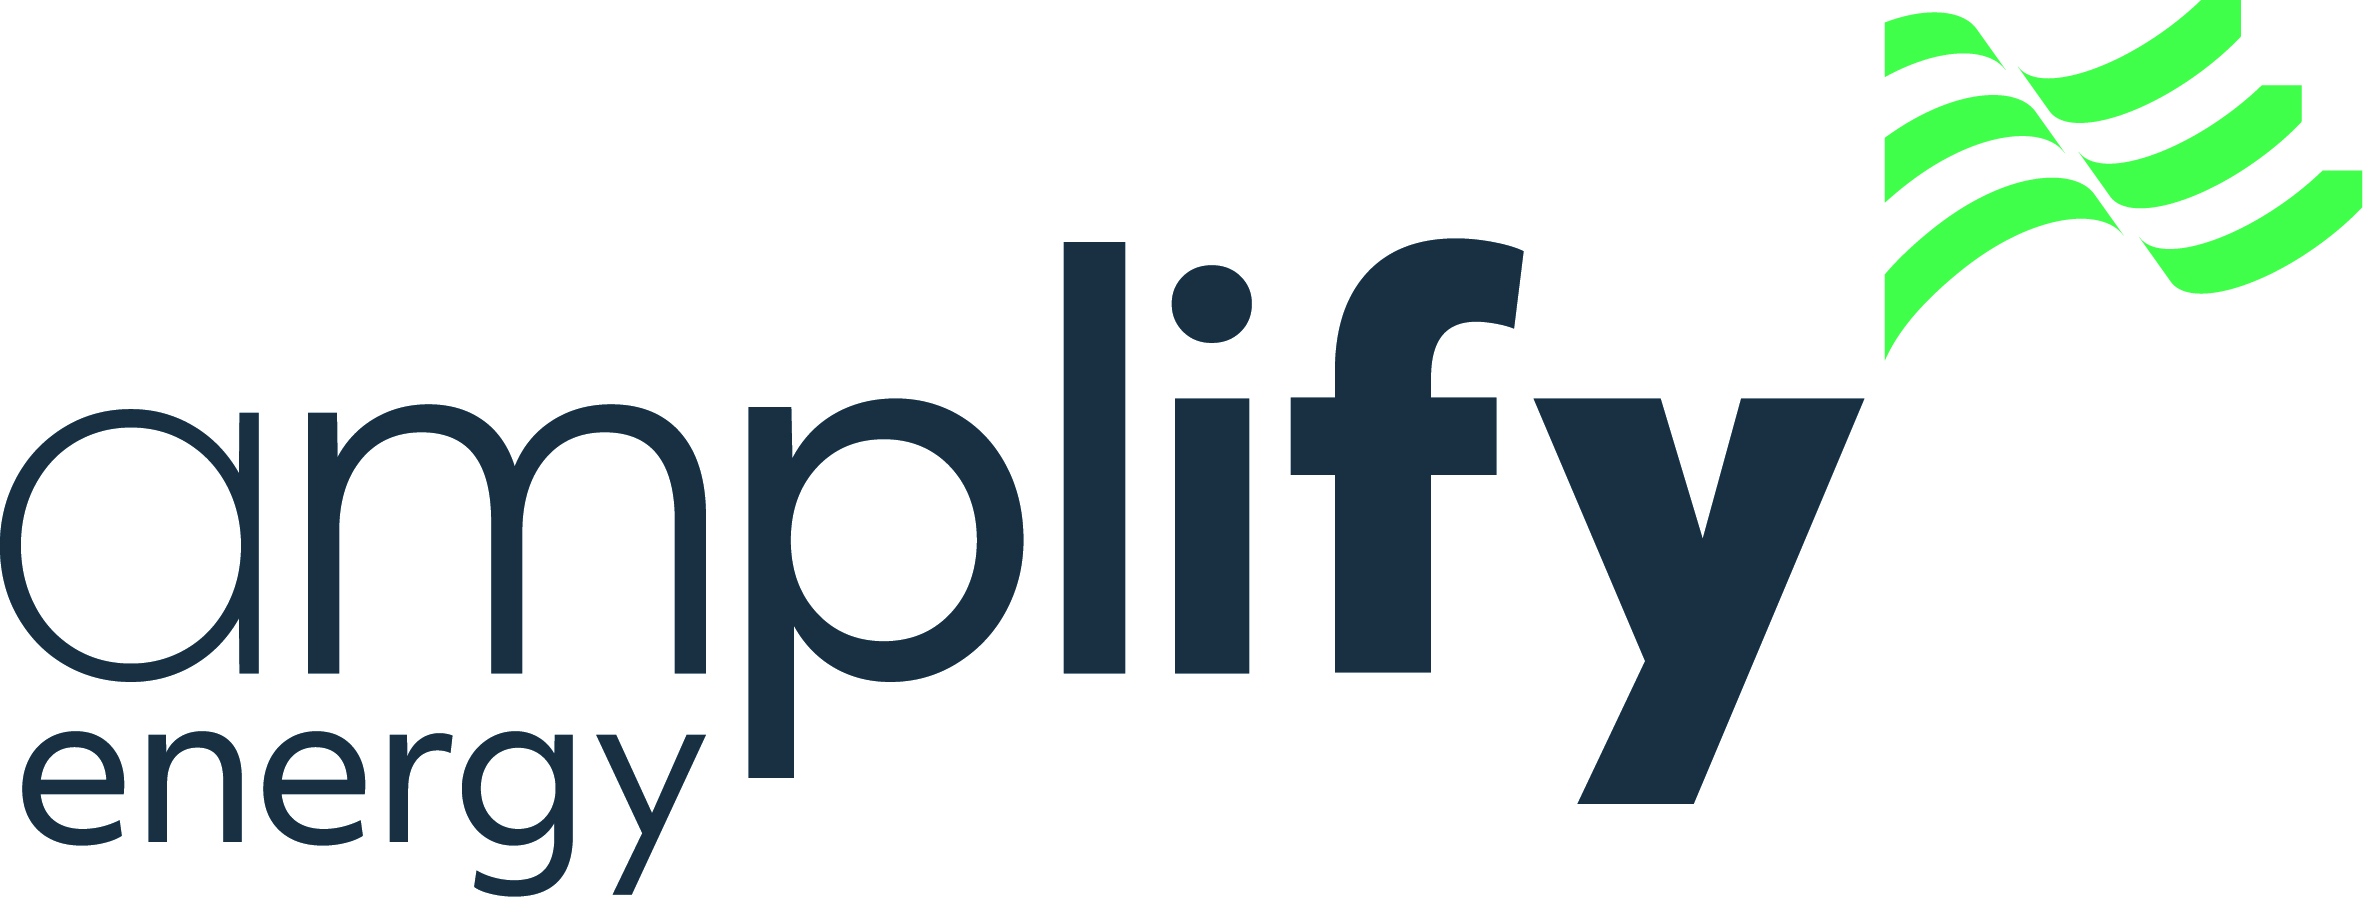 Amplify Energy Announces First Quarter 2019 Results, Midstates Merger Update and Updated 2019 Guidance